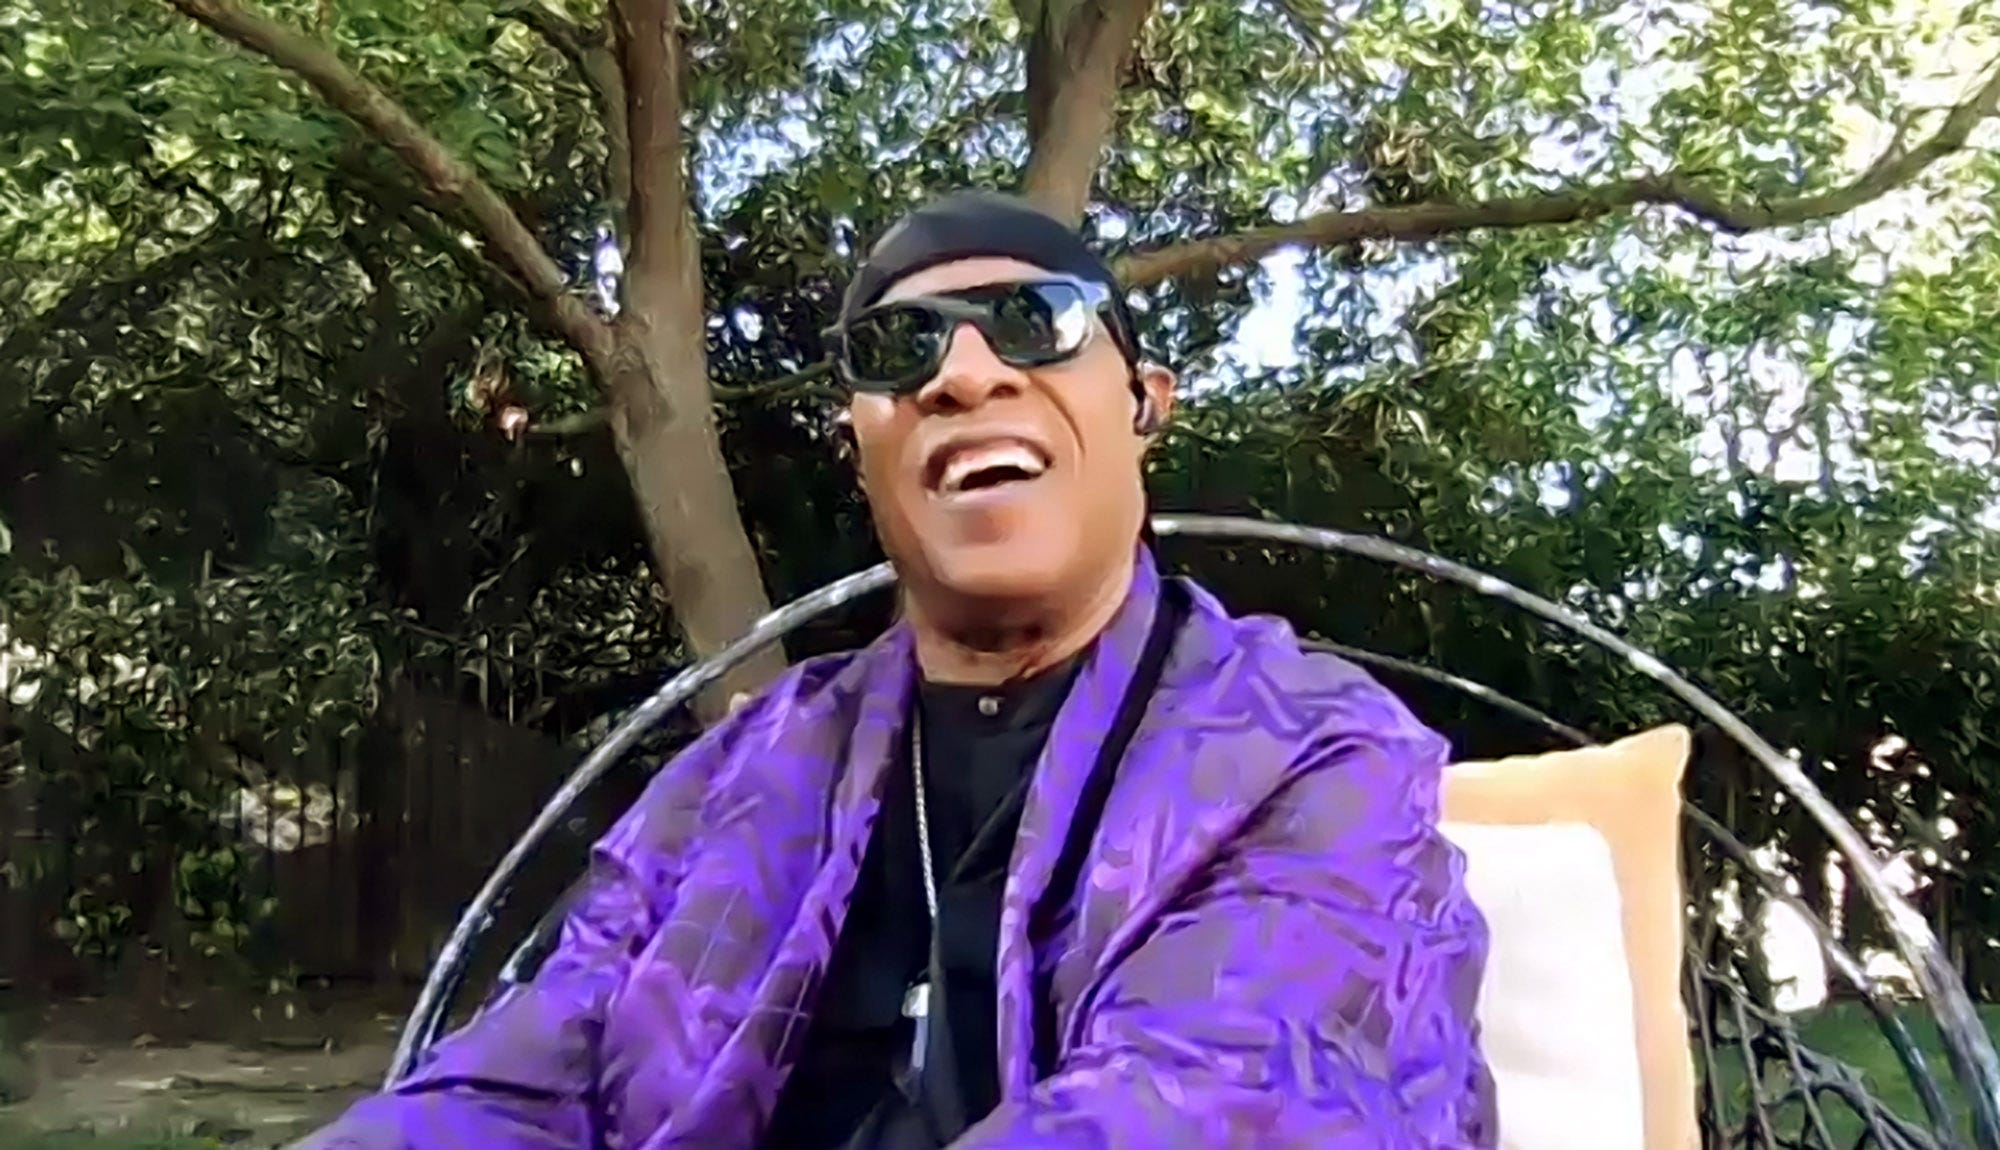 Stevie Wonder announces new music, leaves Motown to form his own label